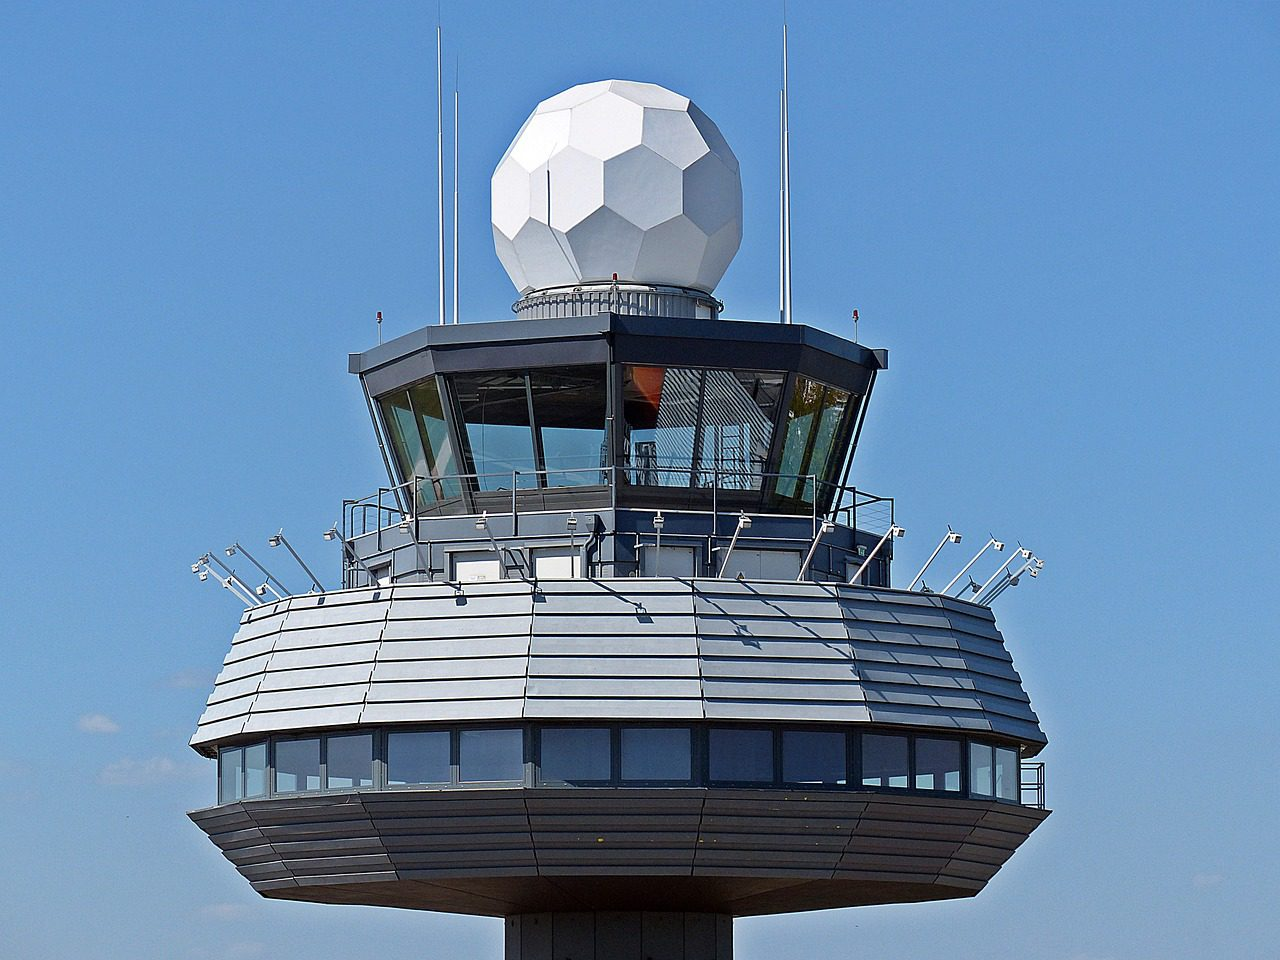 Airtraffic Controller